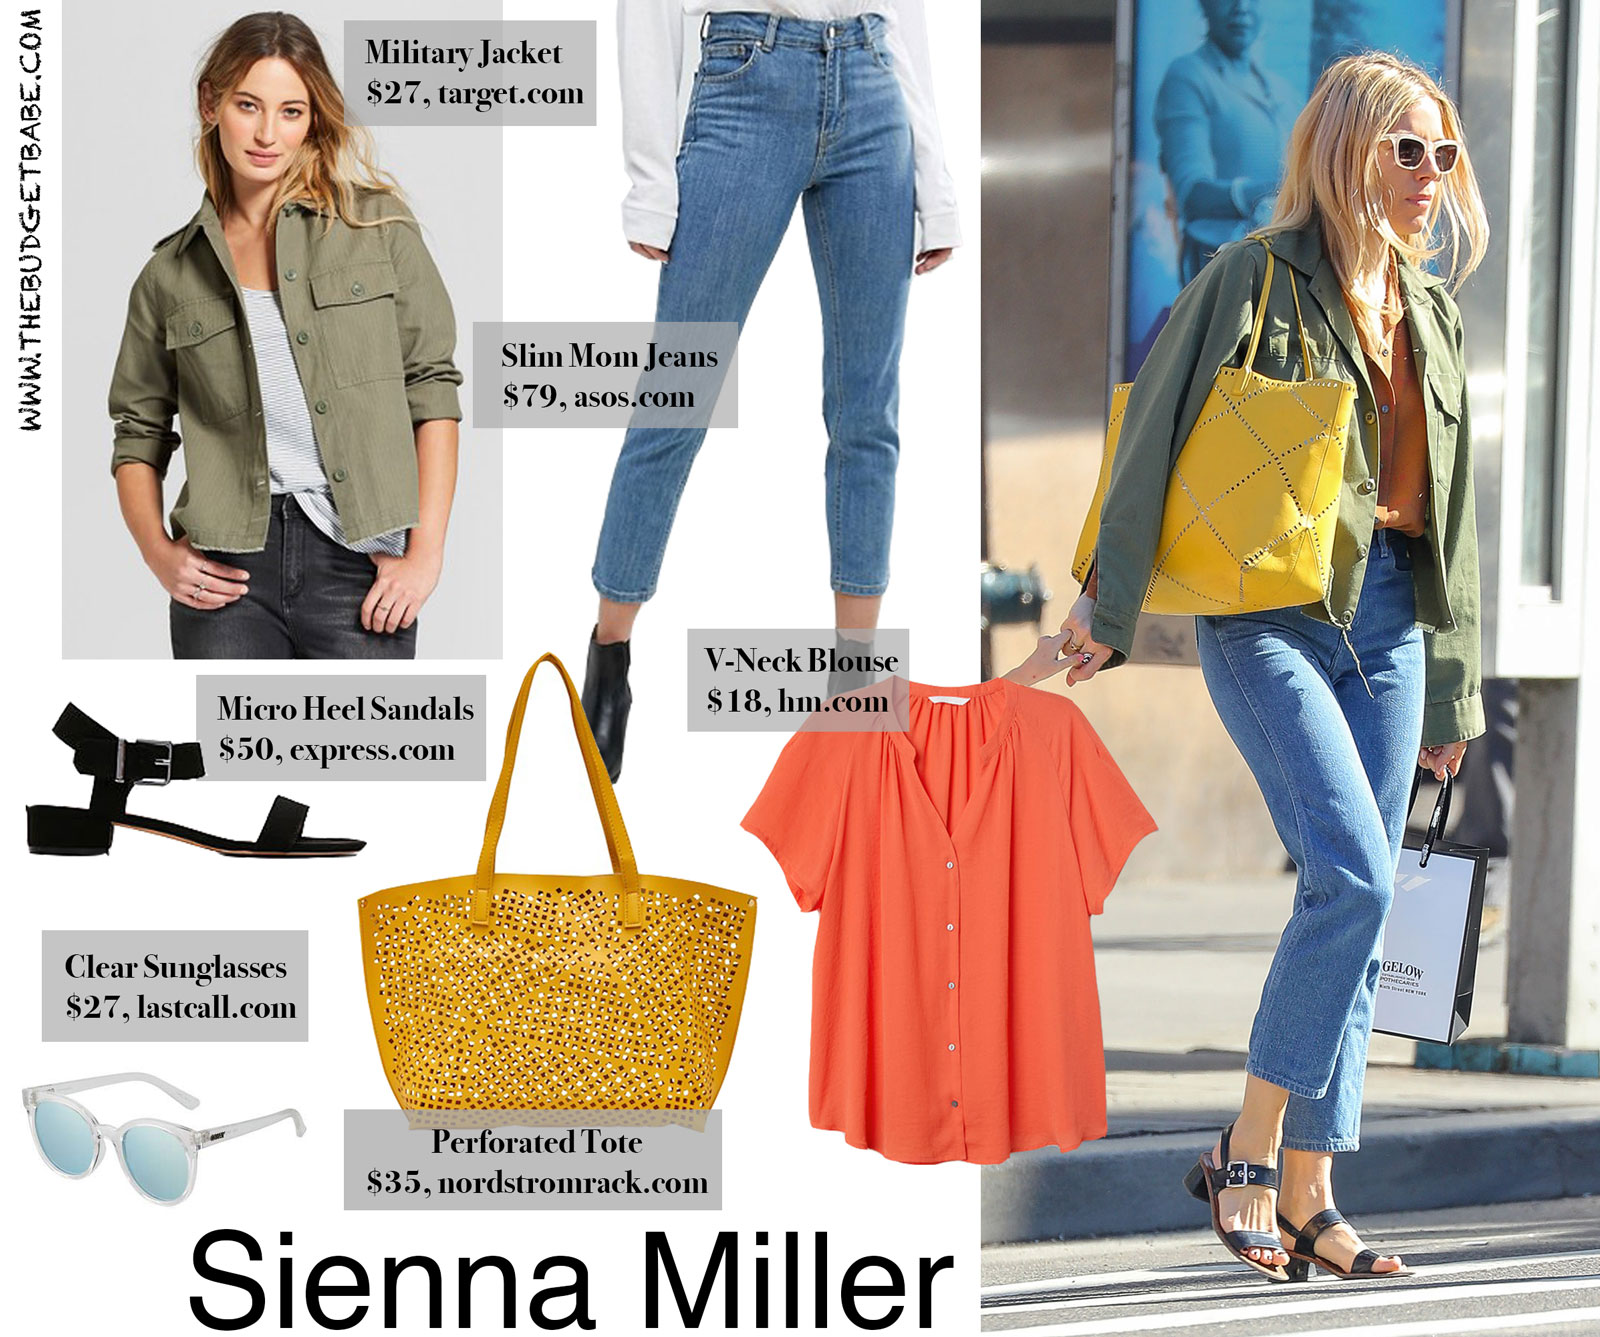 Sienna Miller's Army Jacket and Yellow Tote Look for Less